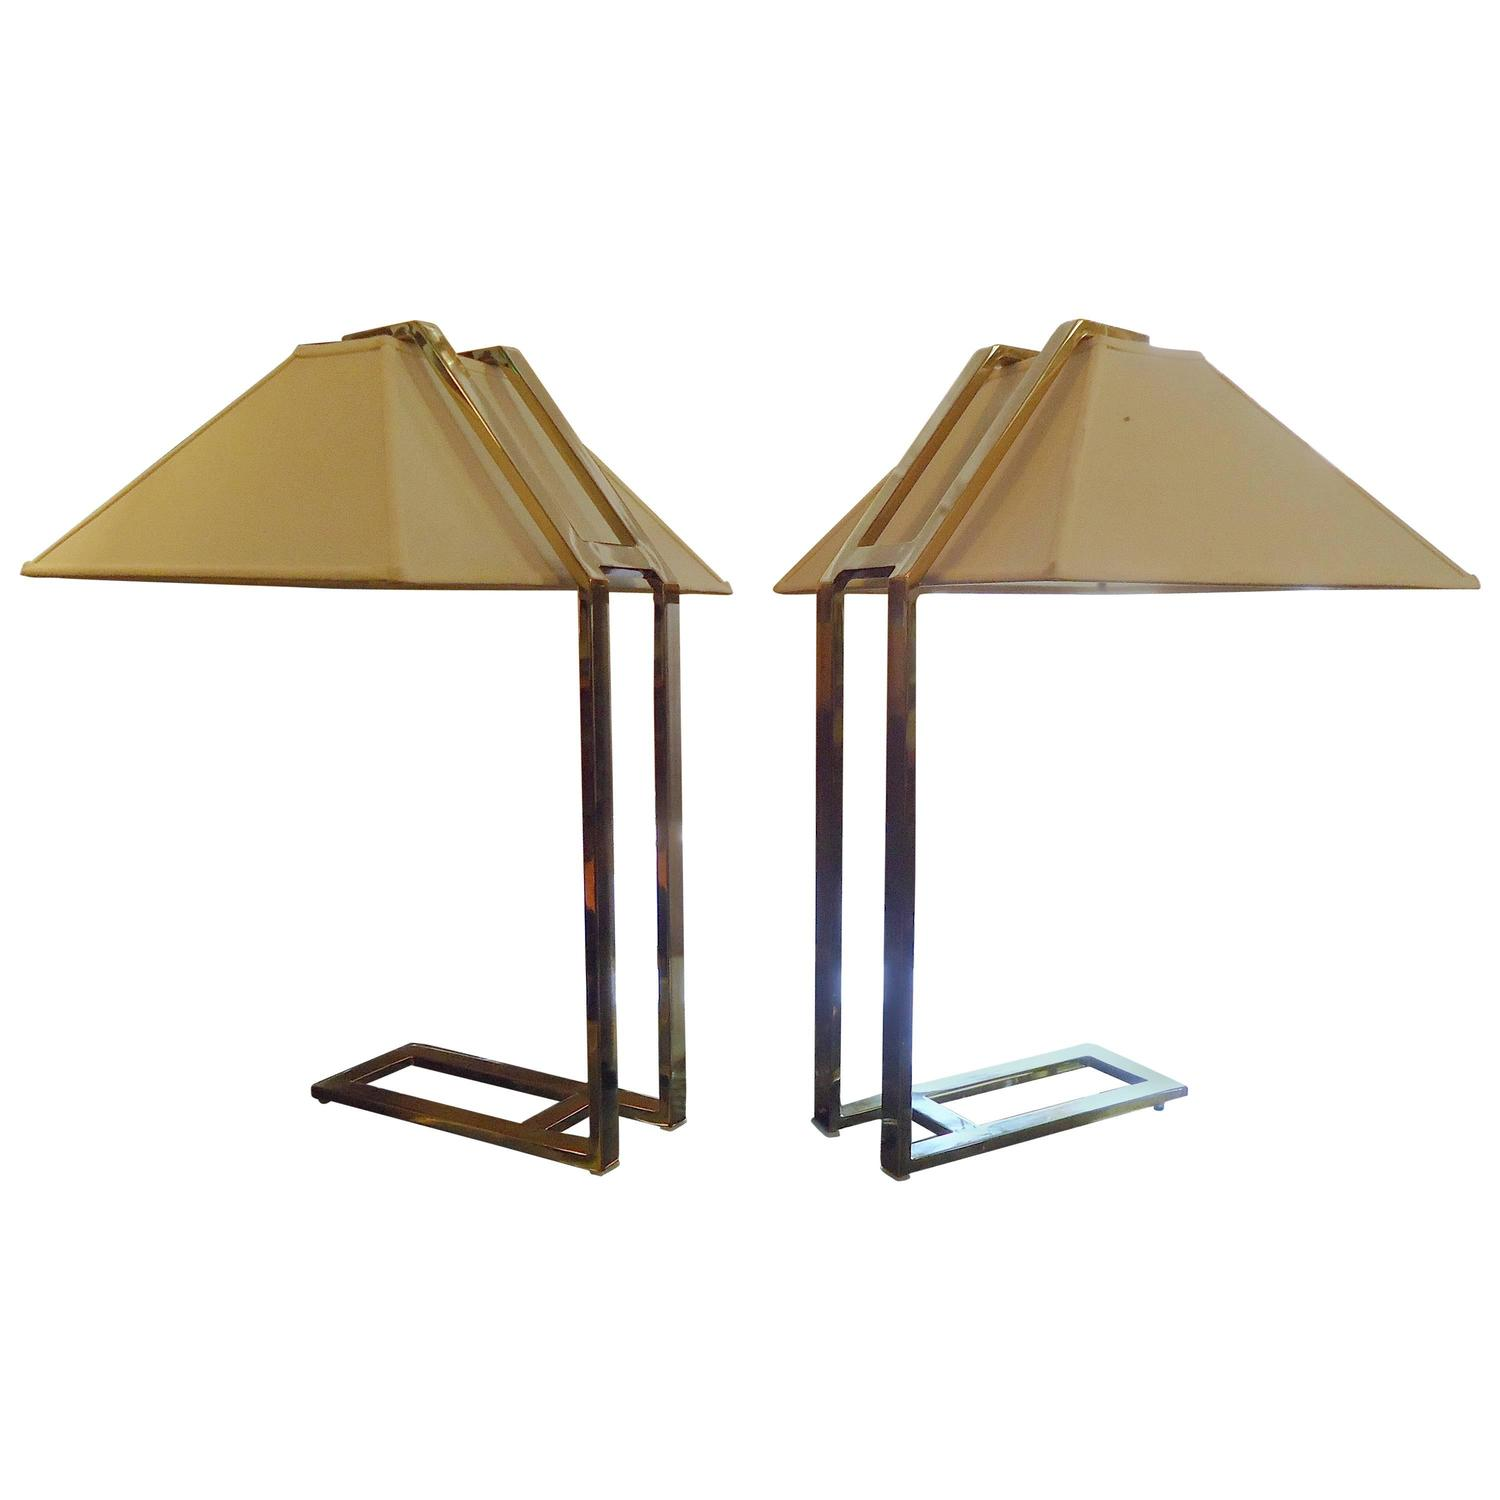 Unique Mid Century Brass Table Lamps For Sale At 1stdibs